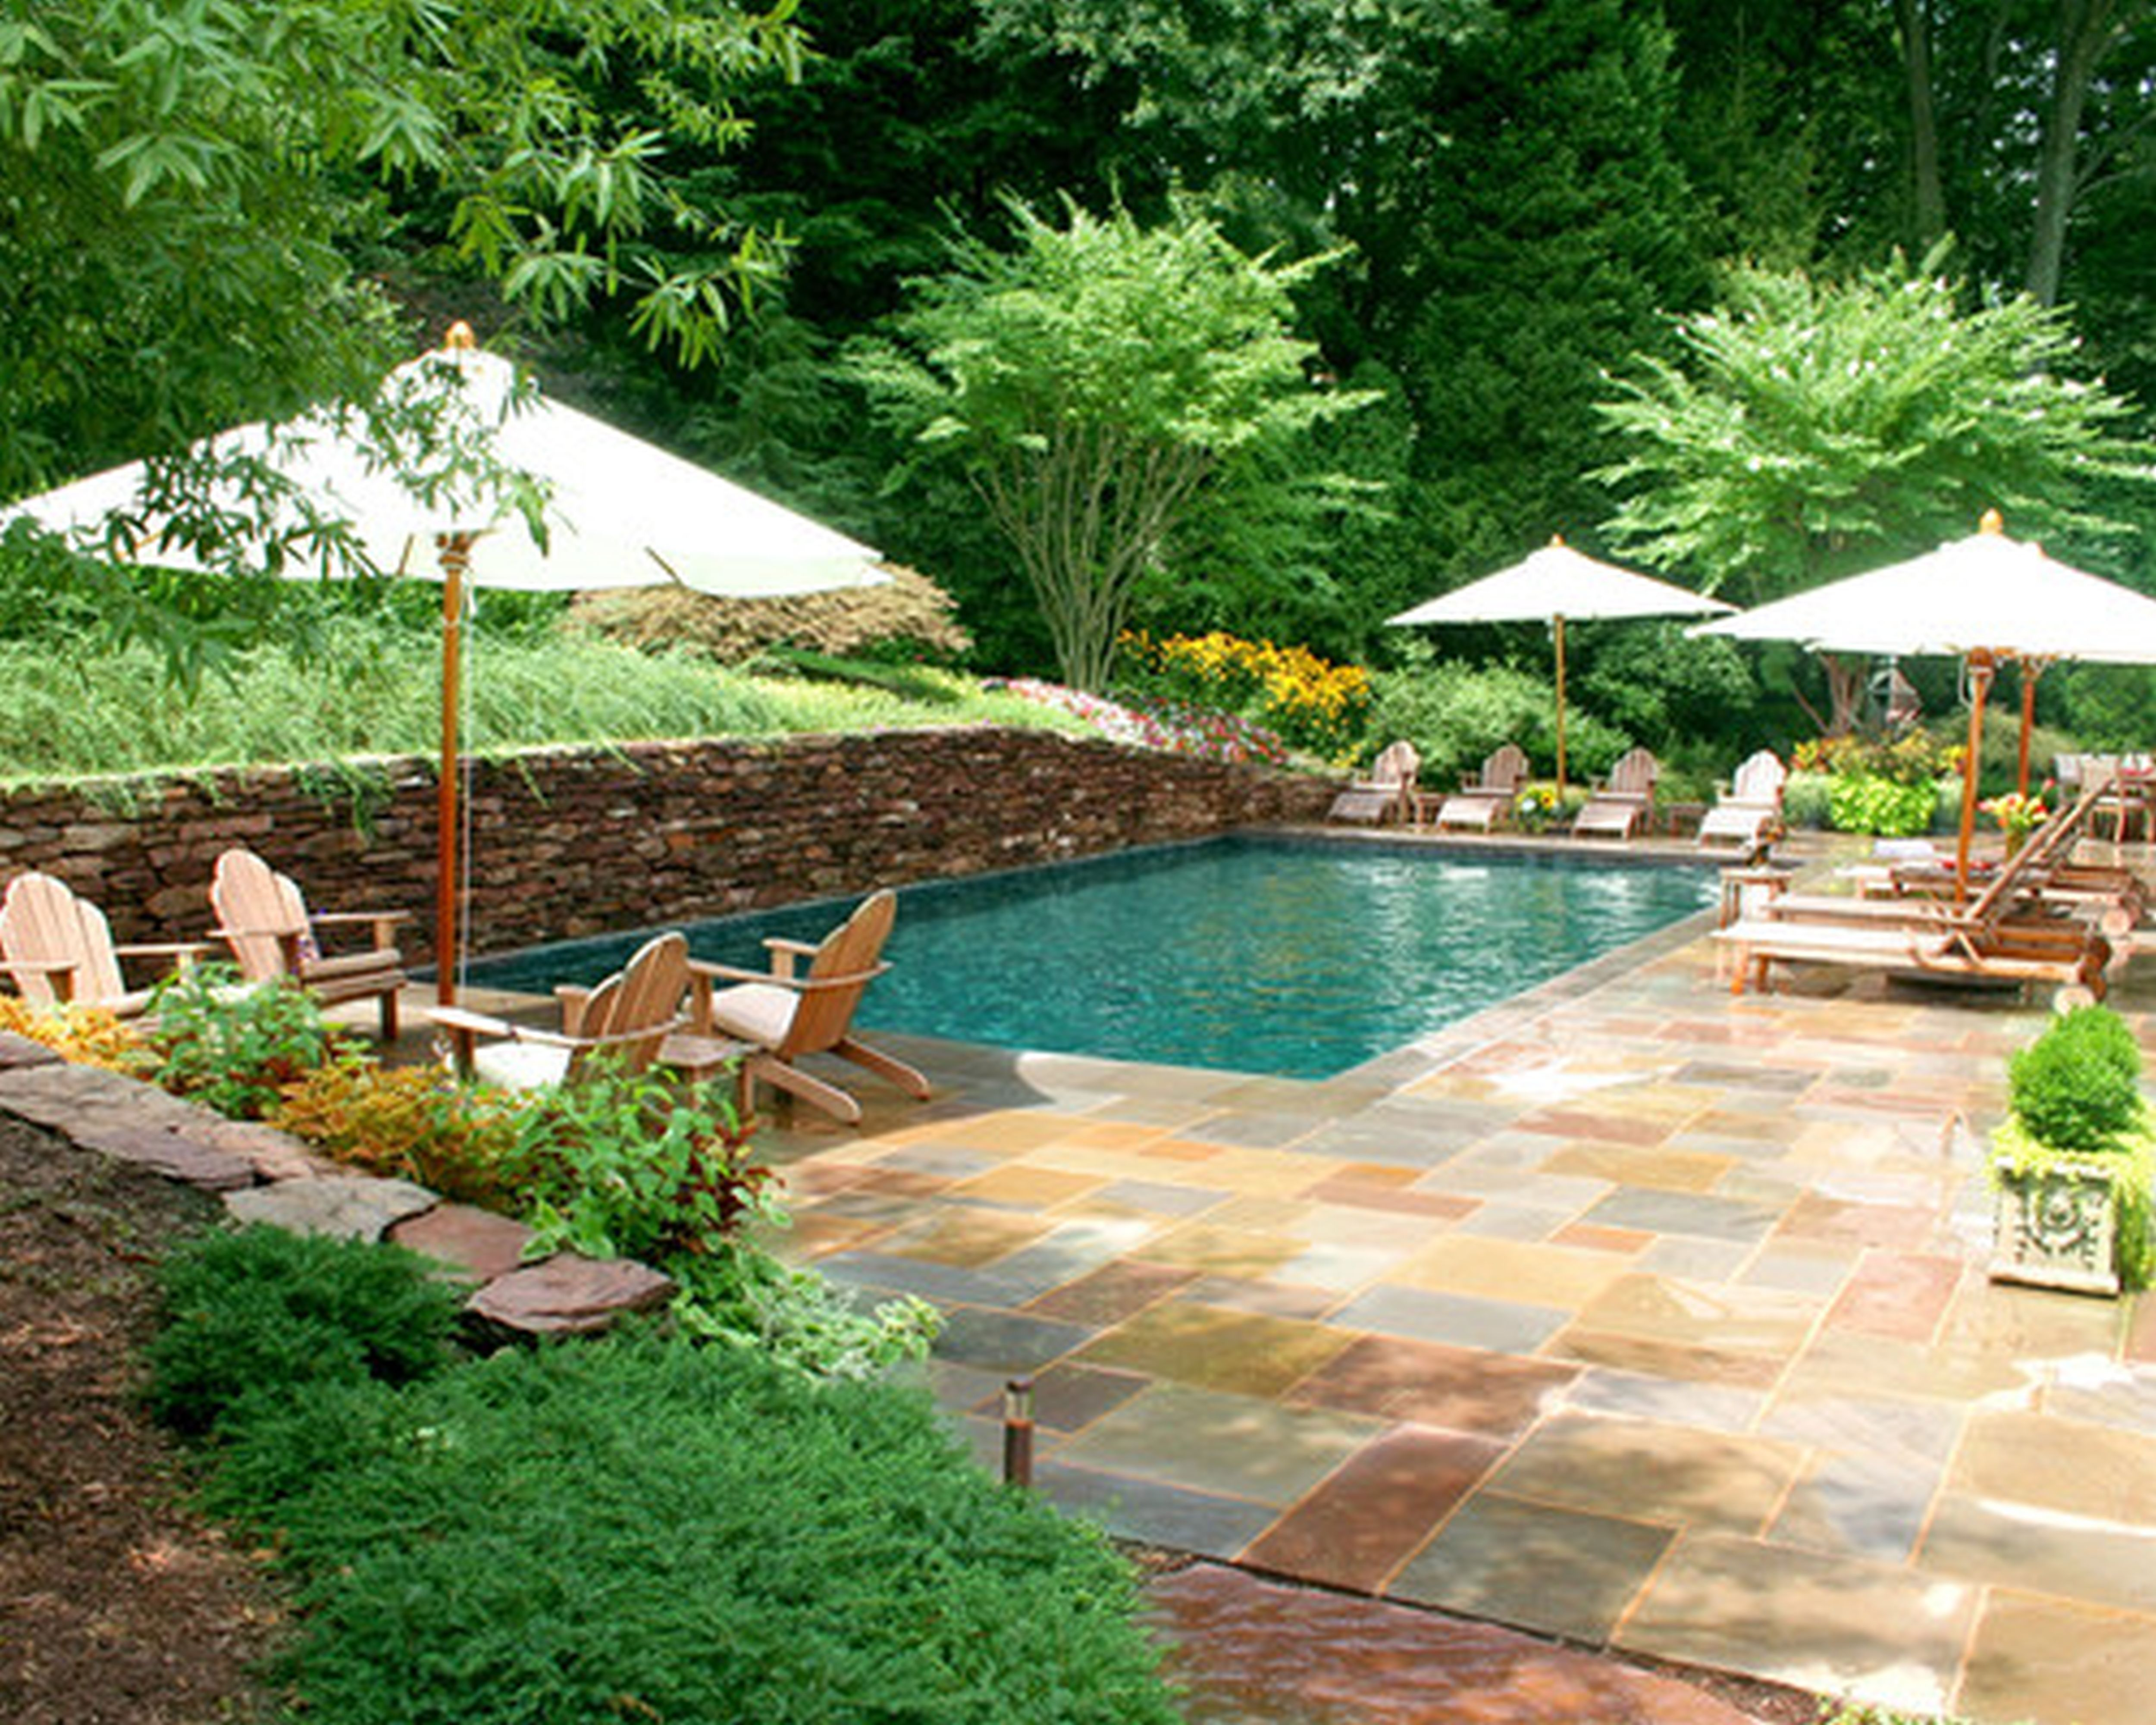 Designing your backyard swimming pool part i of ii Great pool design ideas